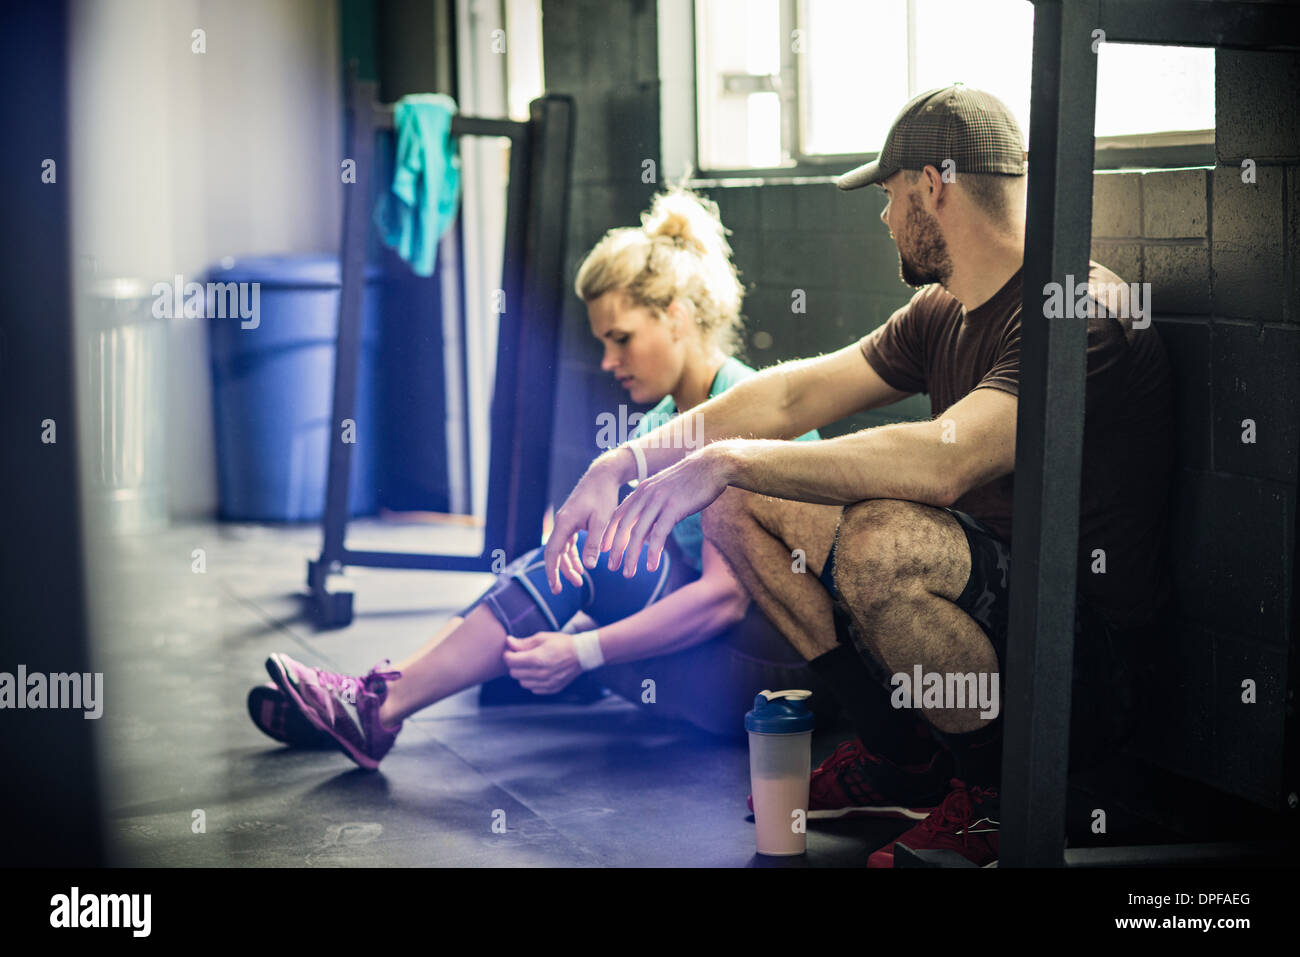 Trainer talking to young woman in gymnasium Stock Photo